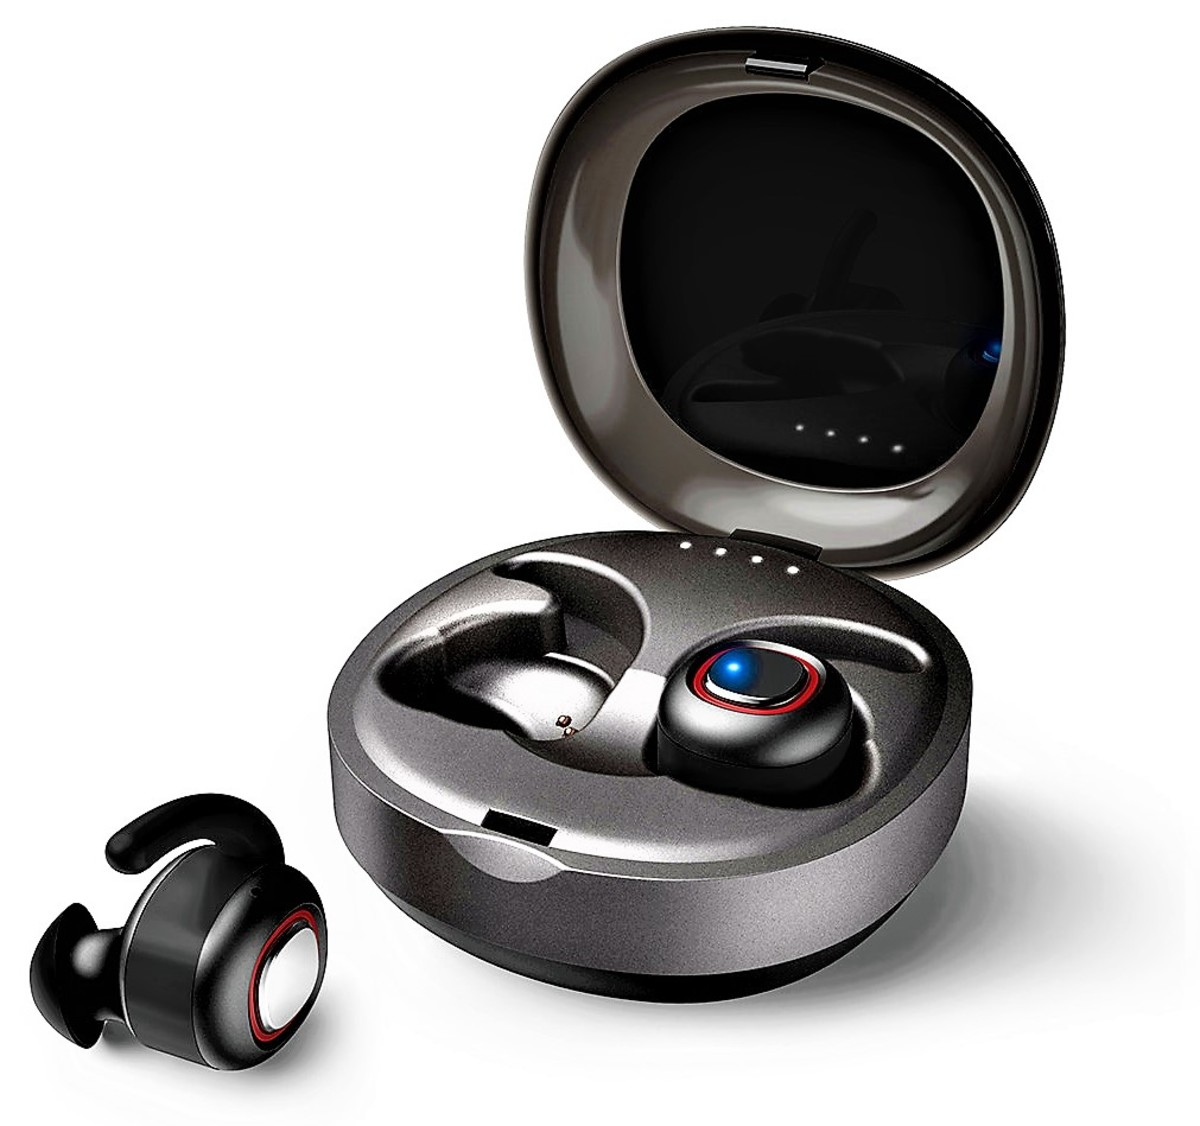 Product Review: Dodocool True Wireless Stereo Earbuds